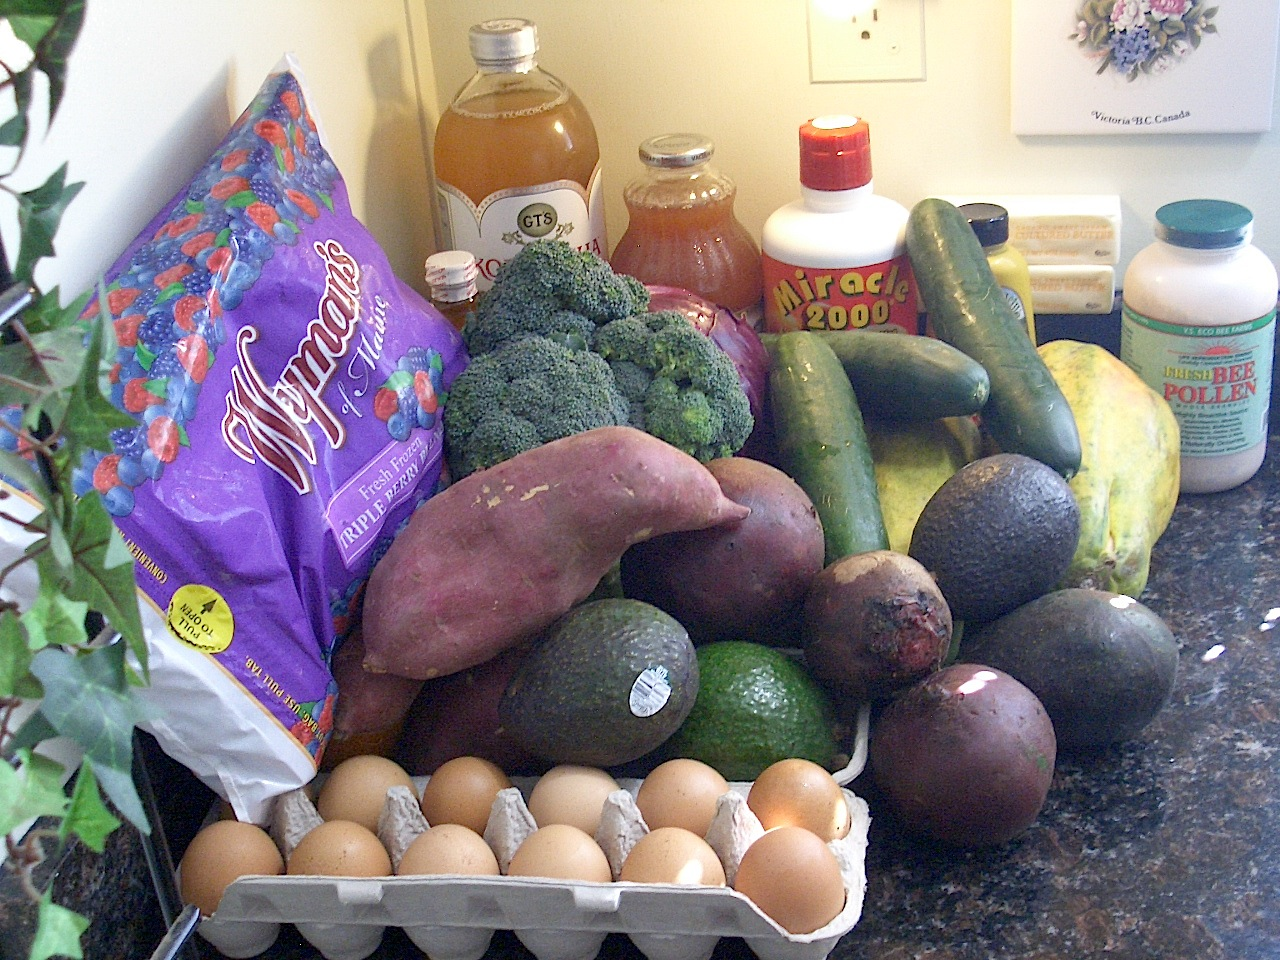 Photo of a Paleo diet - fresh organic pasture-raised eggs, avocados, yam, beets, broccoli, red cabbage, cucumber, papaya, blueberries, blackberries, raspberries, bee pollen, kombucha, and liquid acidophlus and Miracle 2000